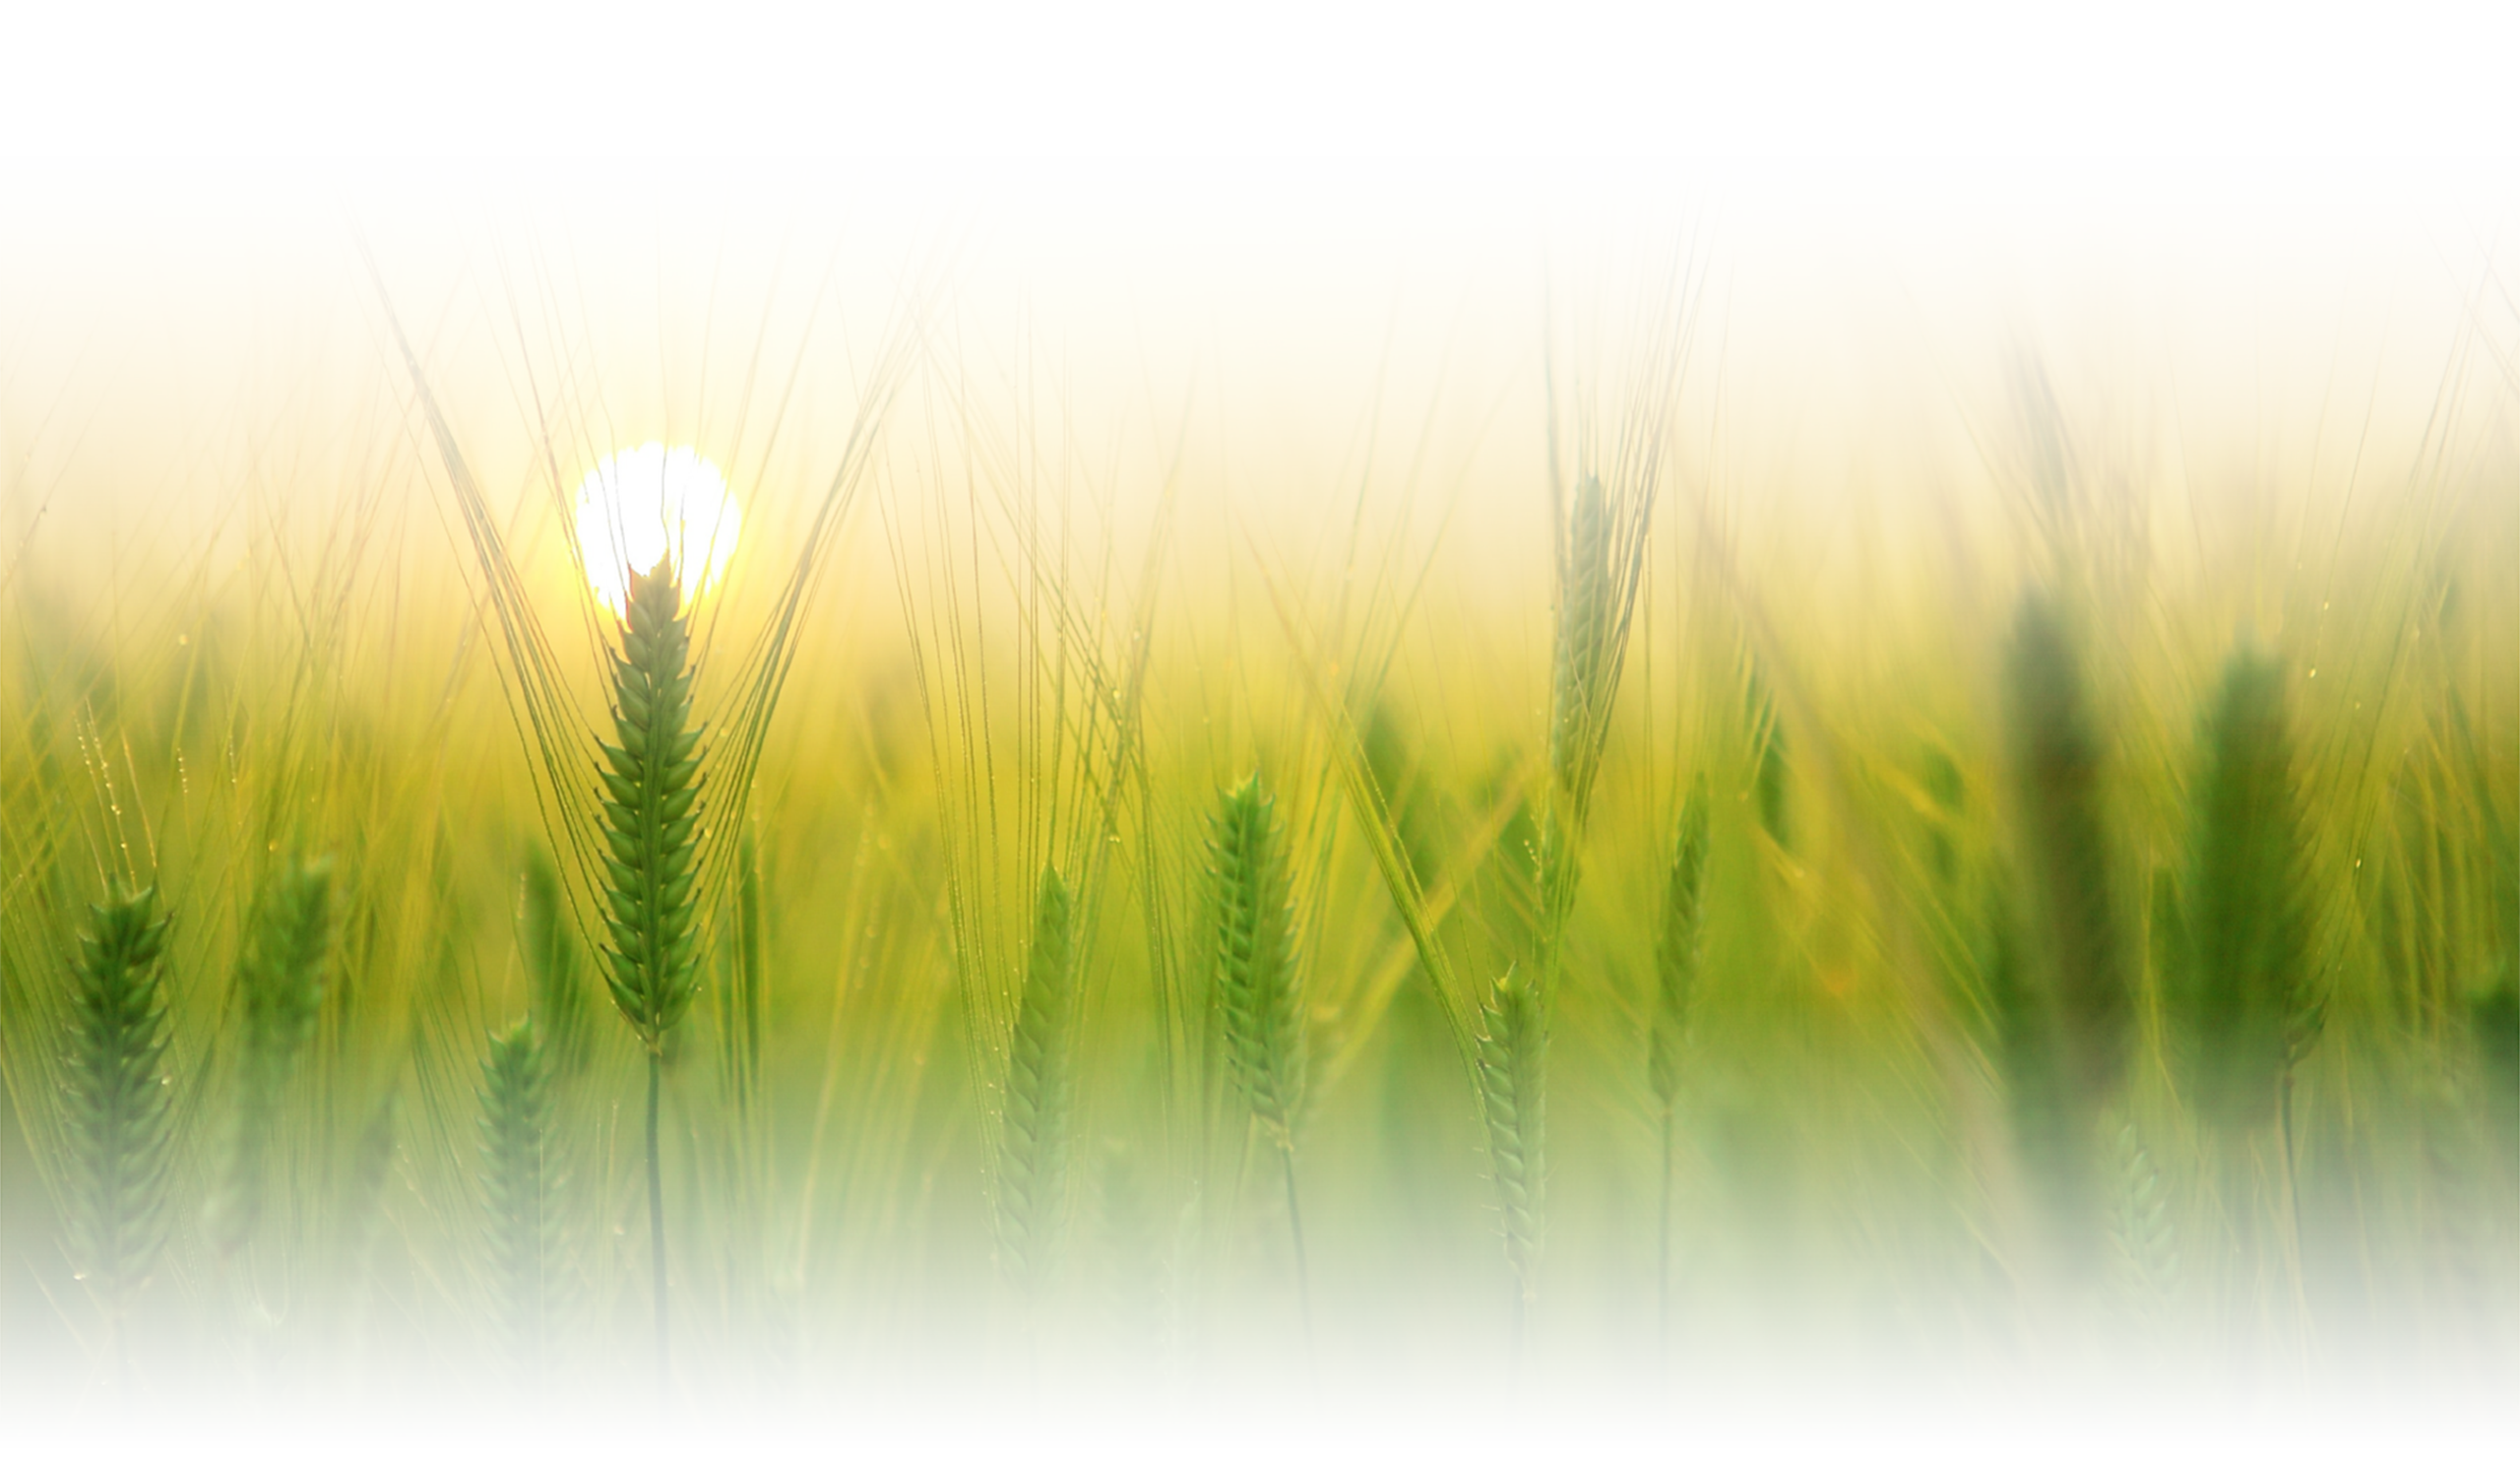 """<img src=""""wheat.png"""" alt=""""wheat image in the sunset"""">"""